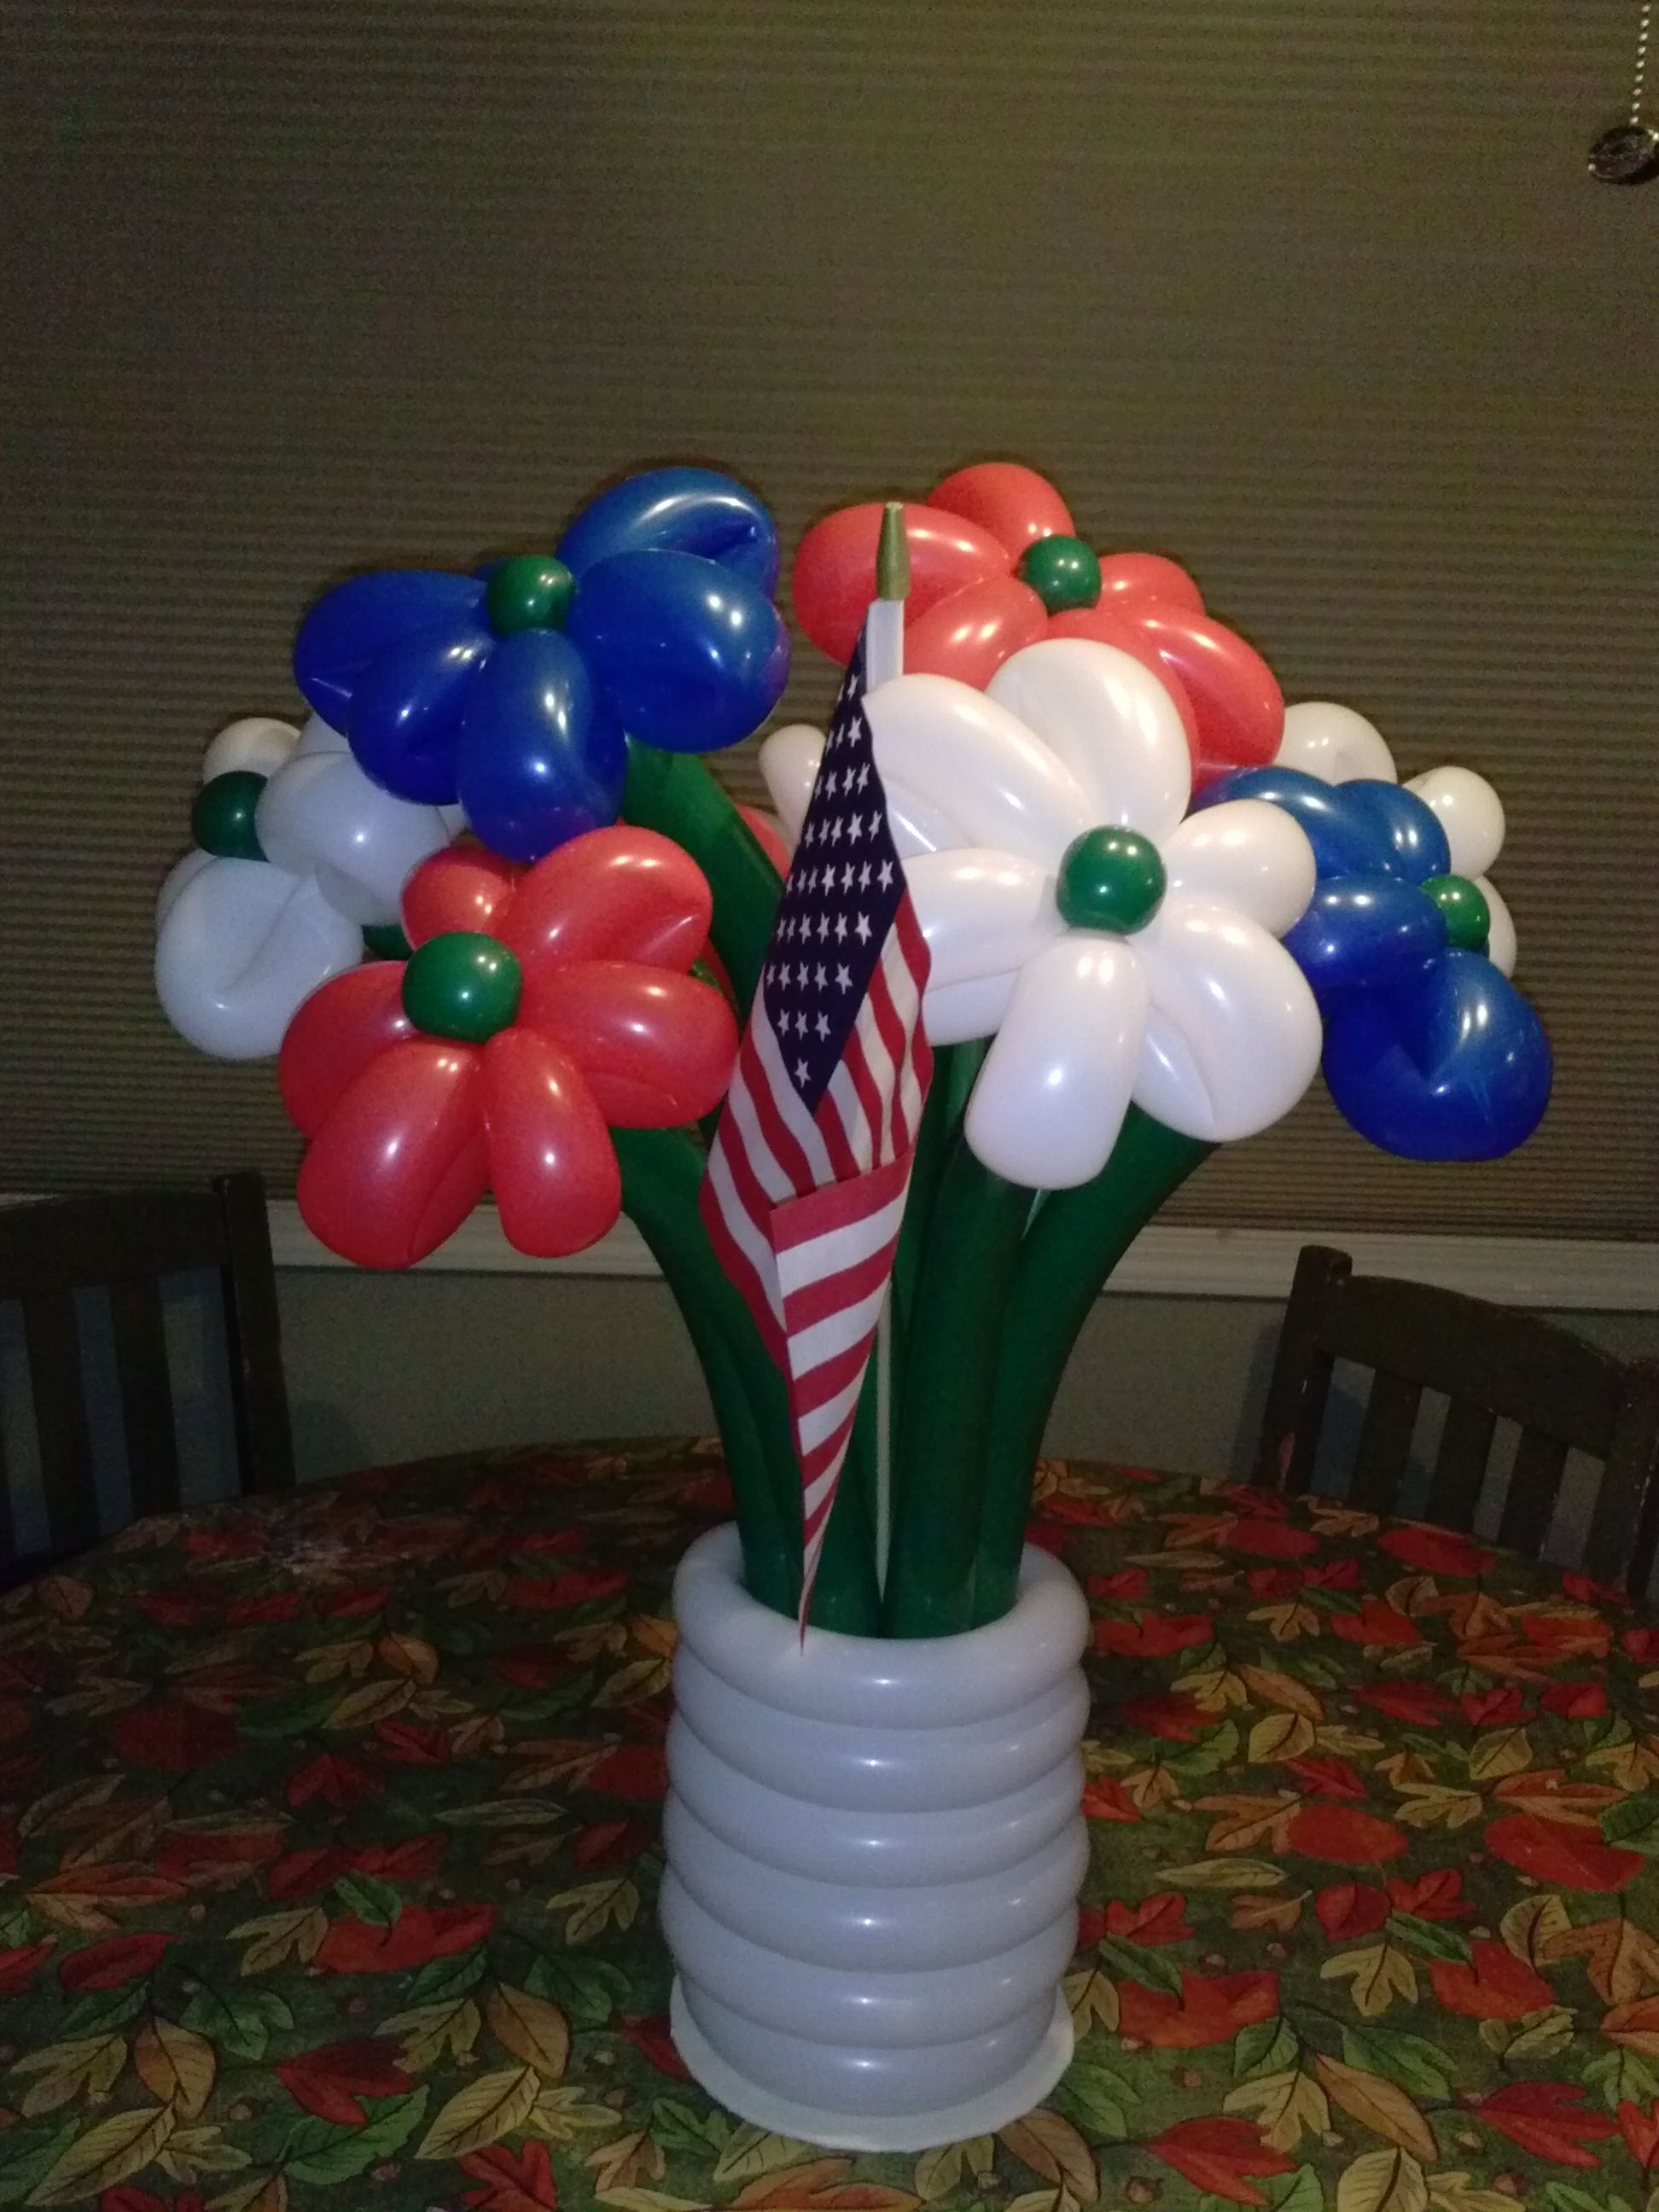 Pin by Honesty Whiting on Balloon Flower Bouquets | Pinterest ...